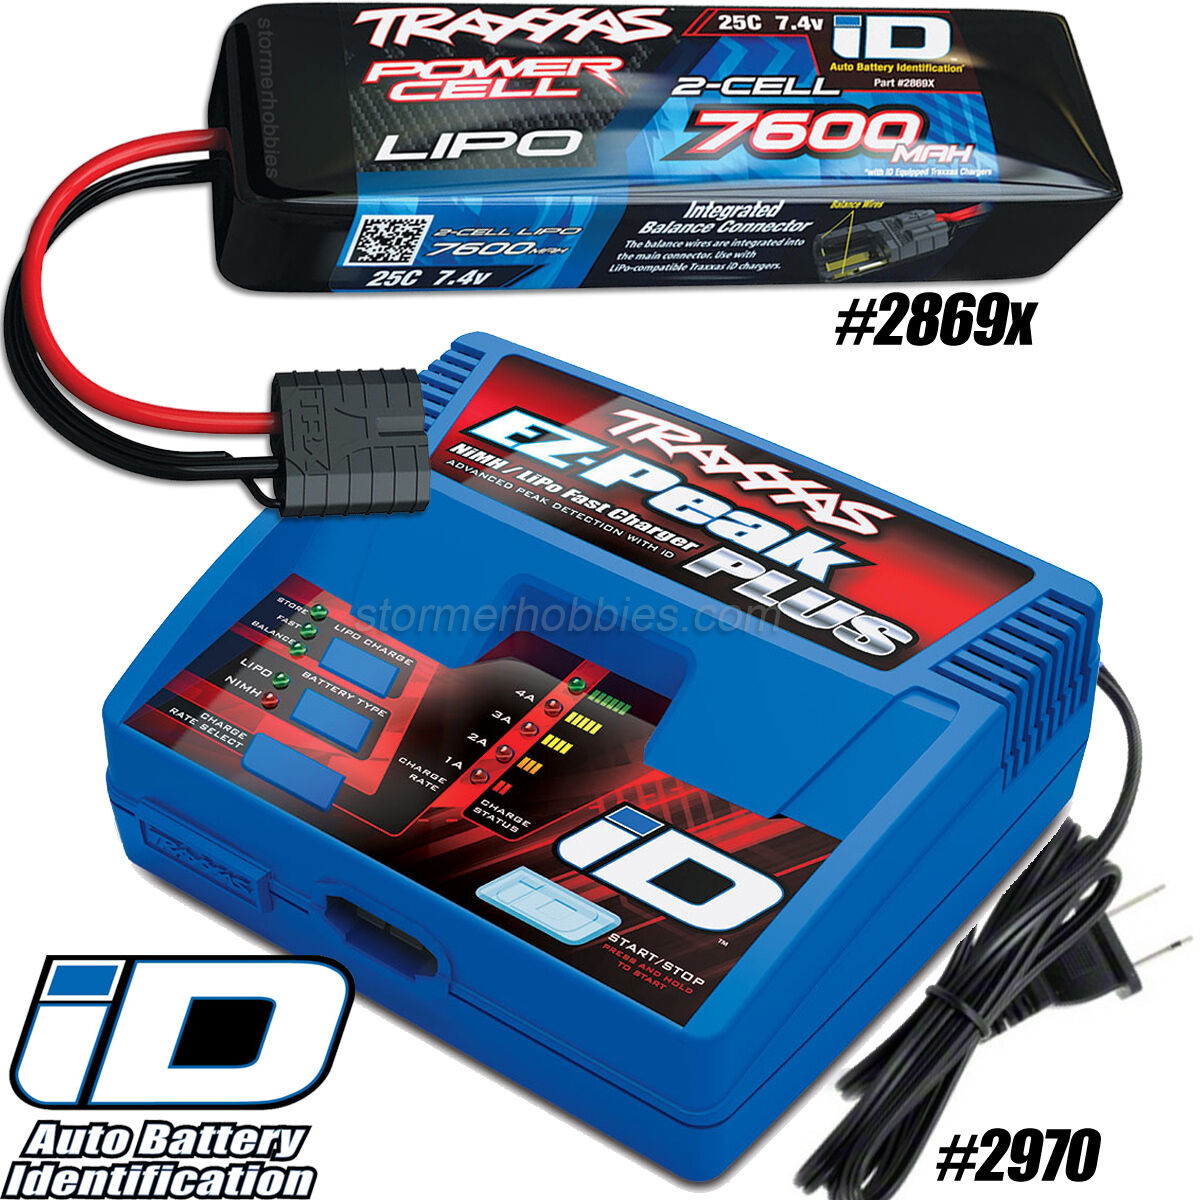 Traxxas EZ-Peak Plus Charger 2970 and 2S 7.4V 7600mAh 25C Lipo Battery 2869x